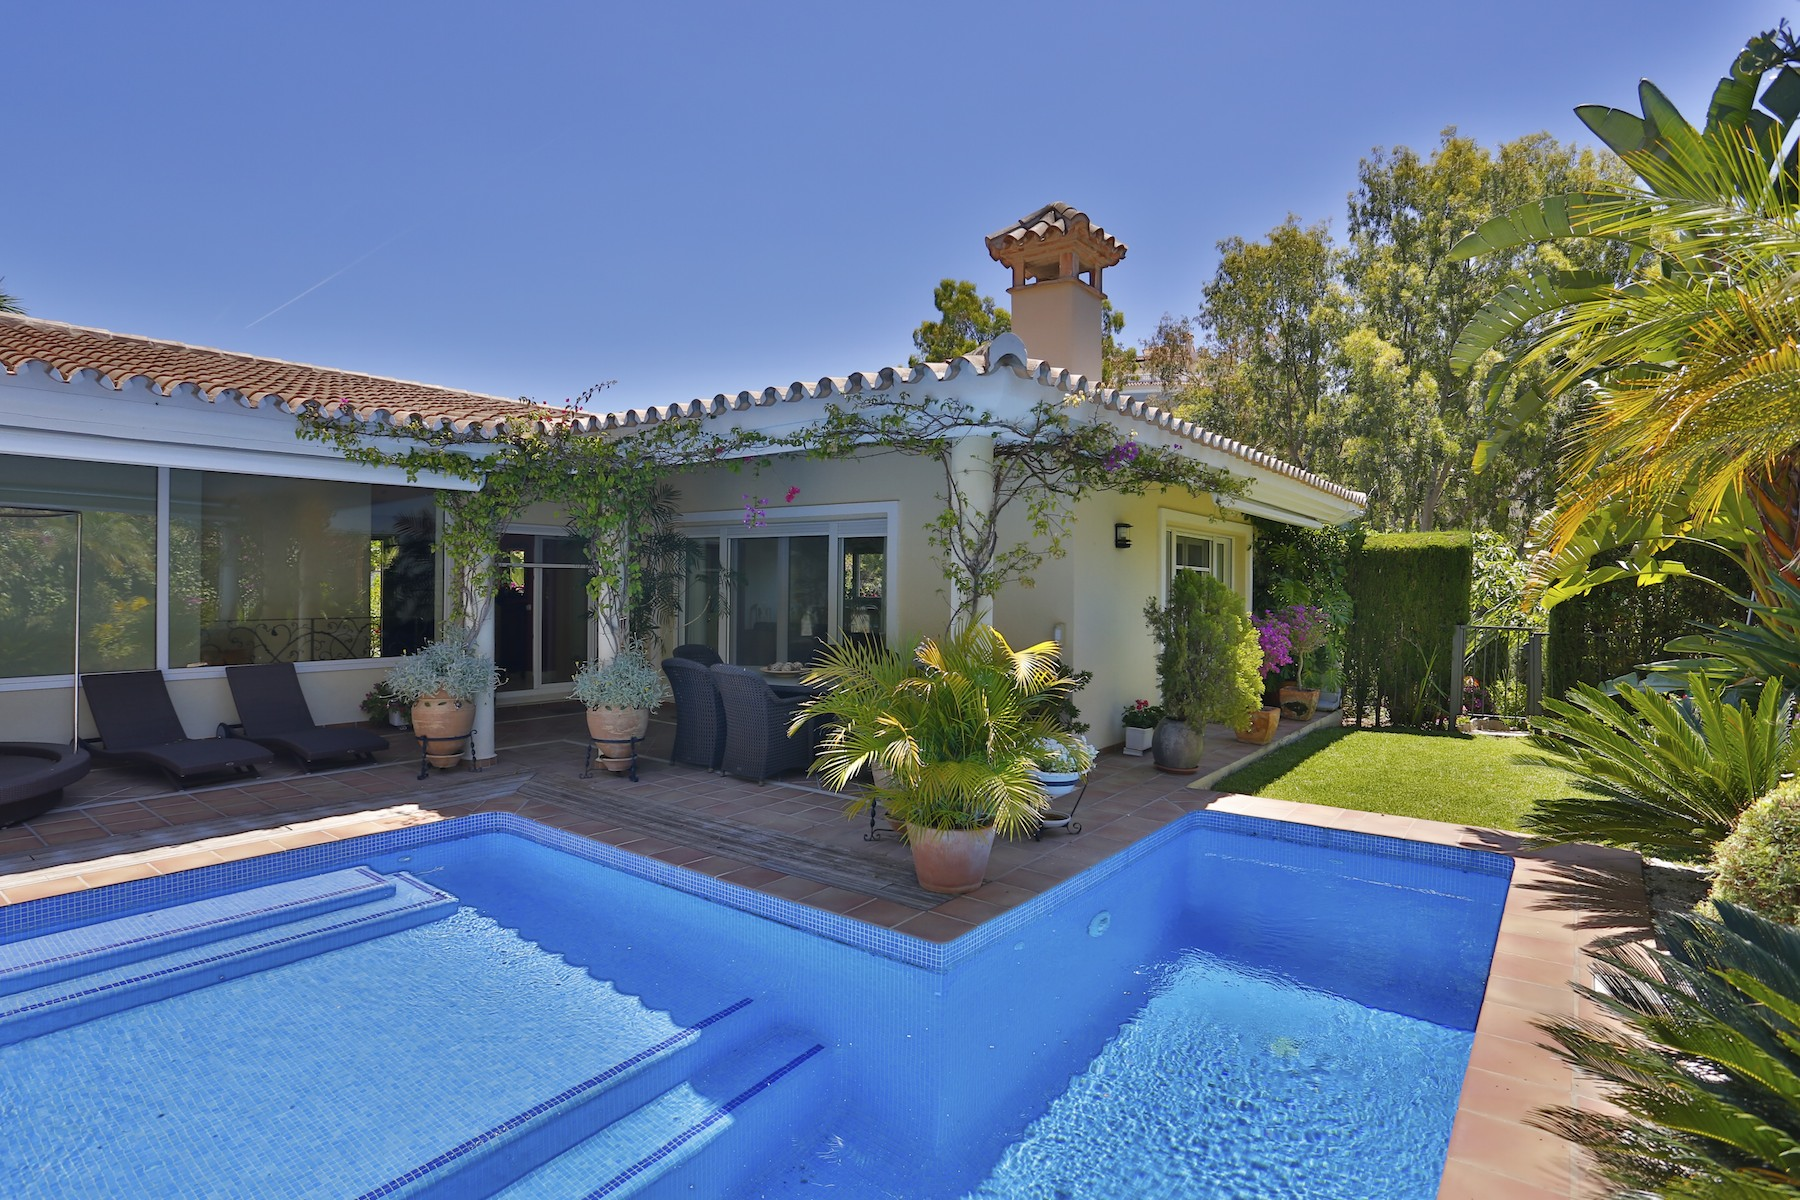 Single Family Home for Sale at Elviria Other Costa Del Sol, Costa Del Sol, Spain